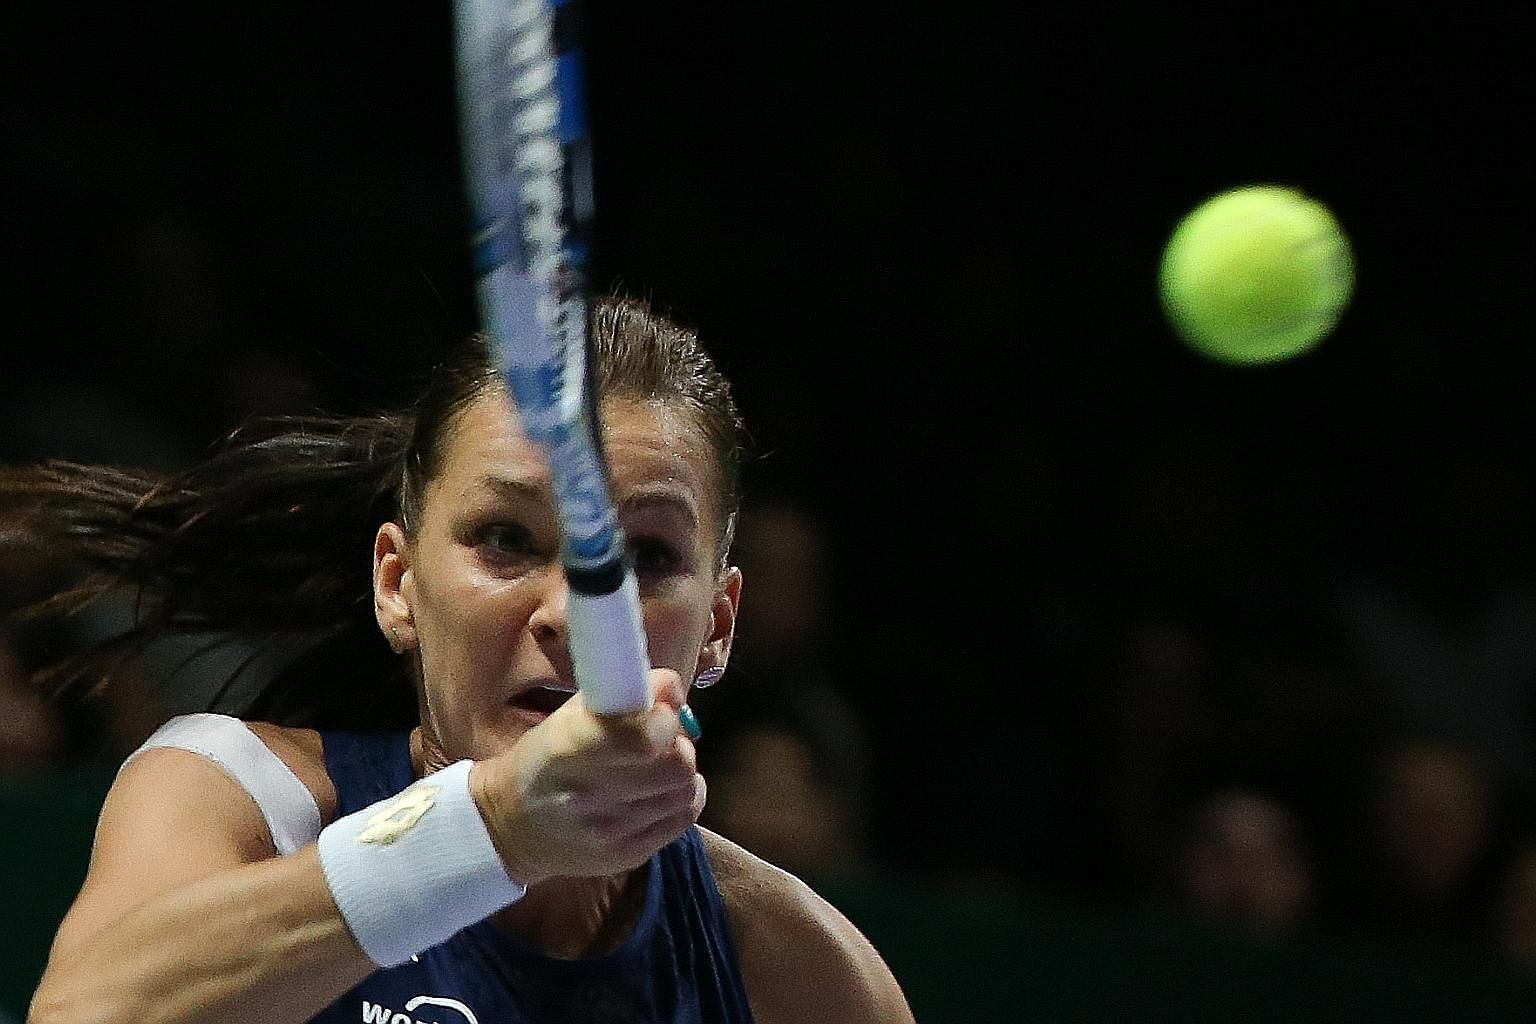 Petra Kvitova taking it out on her racquet after losing a point. Poland's Agnieszka Radwanska is the new year-end world No. 5 after beating the Czech Petra Kvitova 6-2, 4-6, 6-3 to win the WTA Finals title at the Singapore Indoor Stadium.